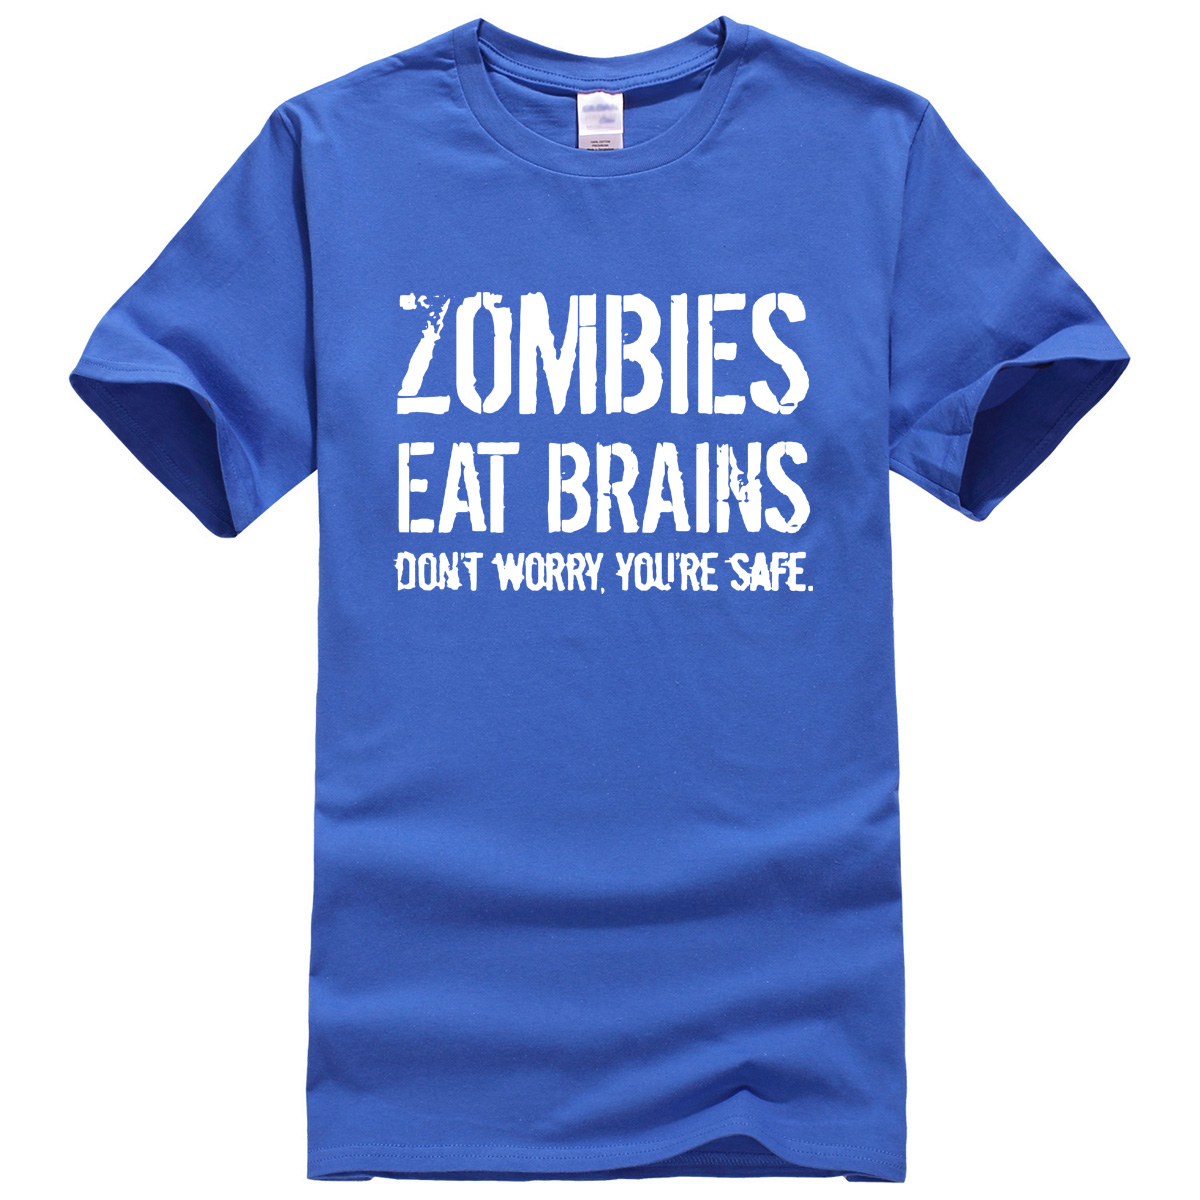 Zombies Eat Brains so your safe